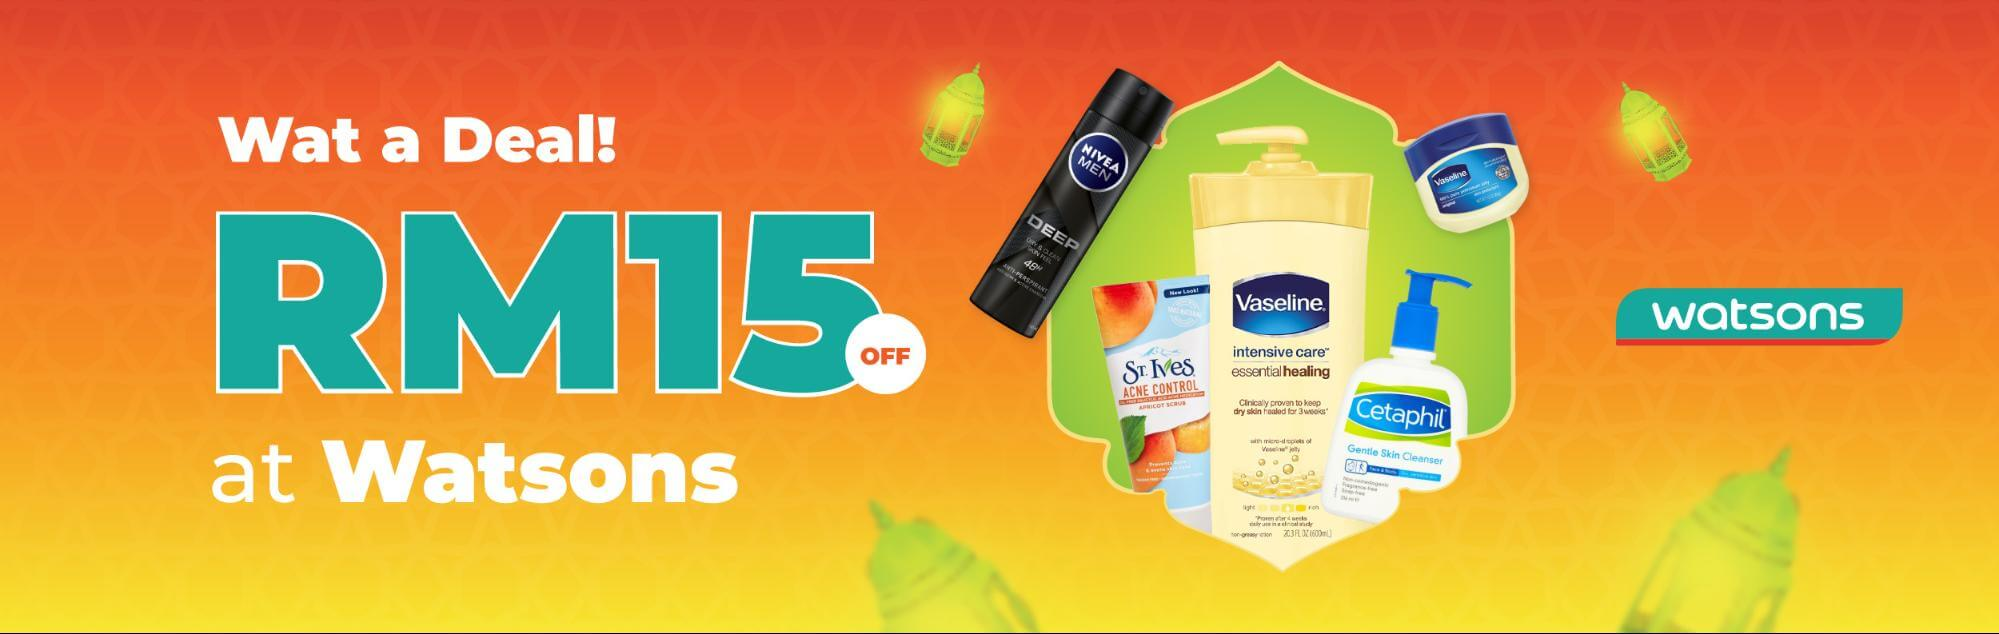 RM15 OFF Watsons purchase